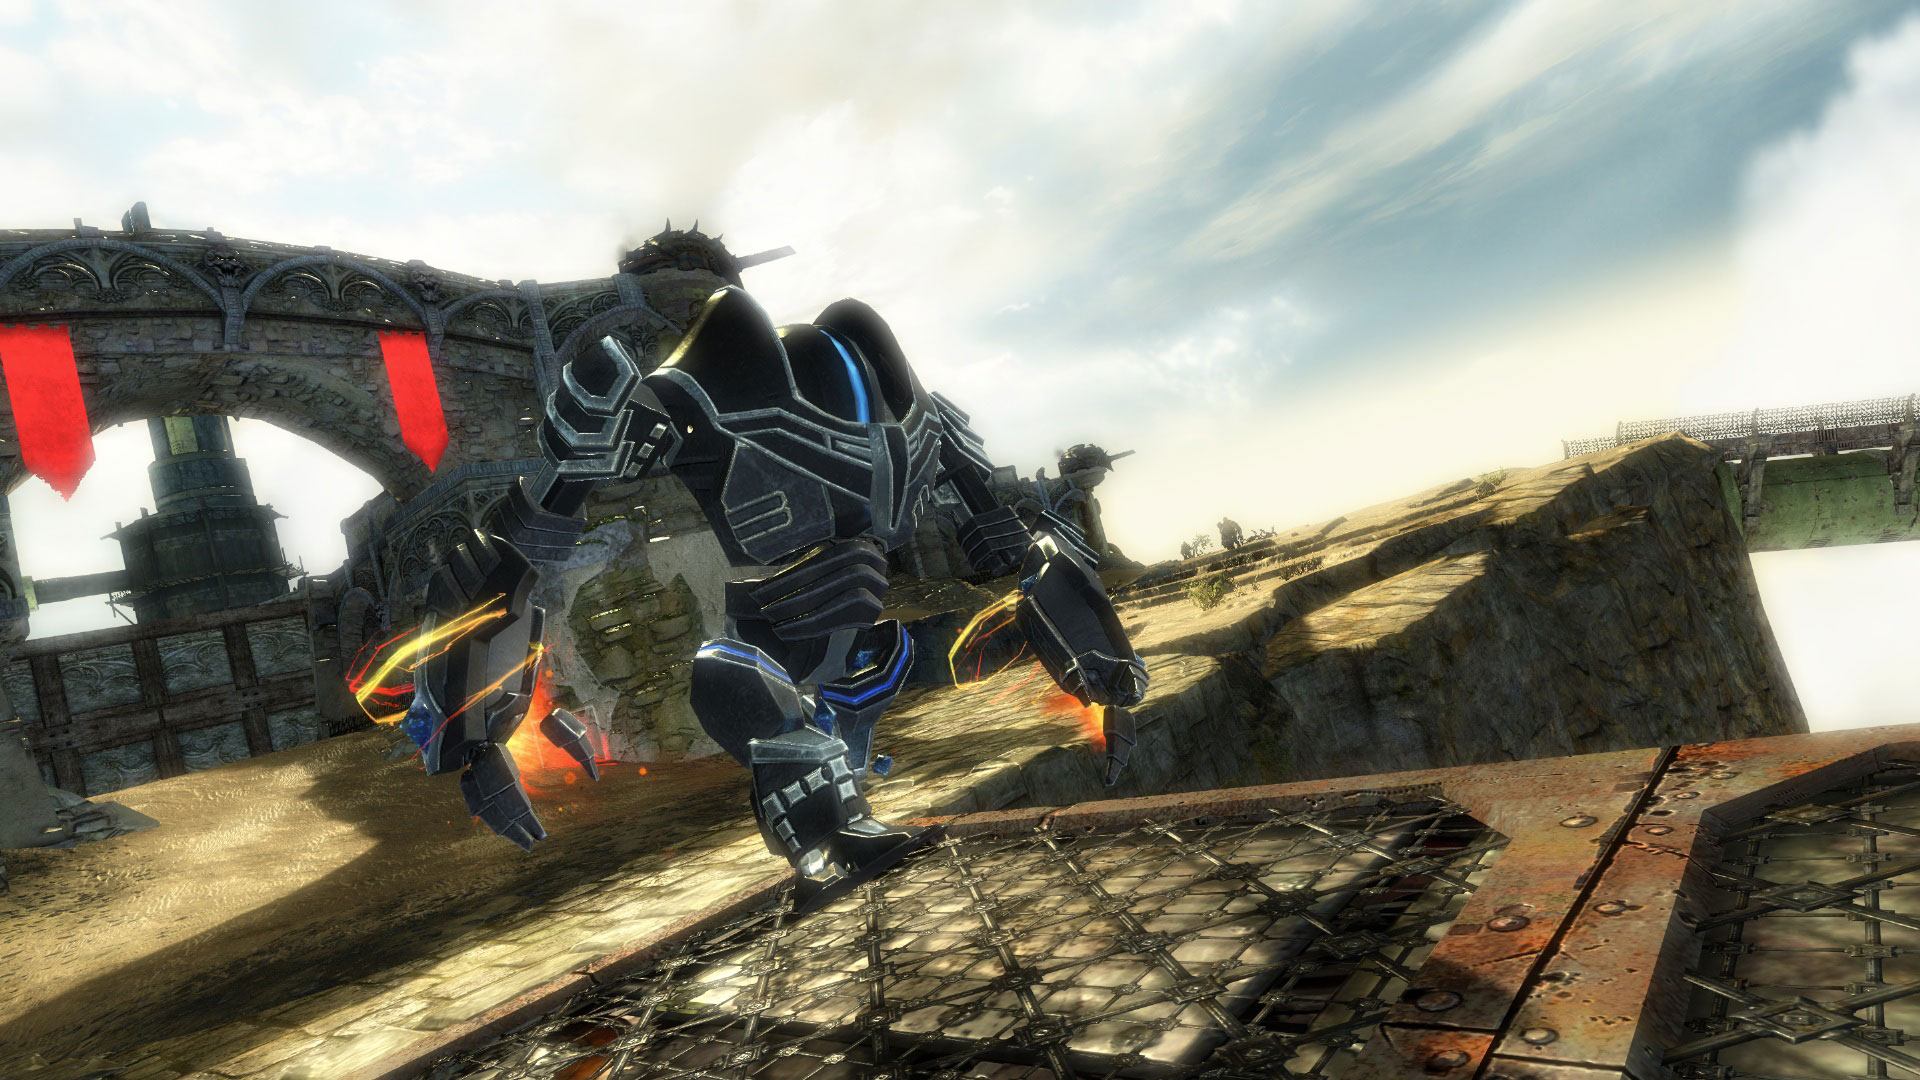 Guild Wars 2 plans siege additions for world-vs.-world PvP